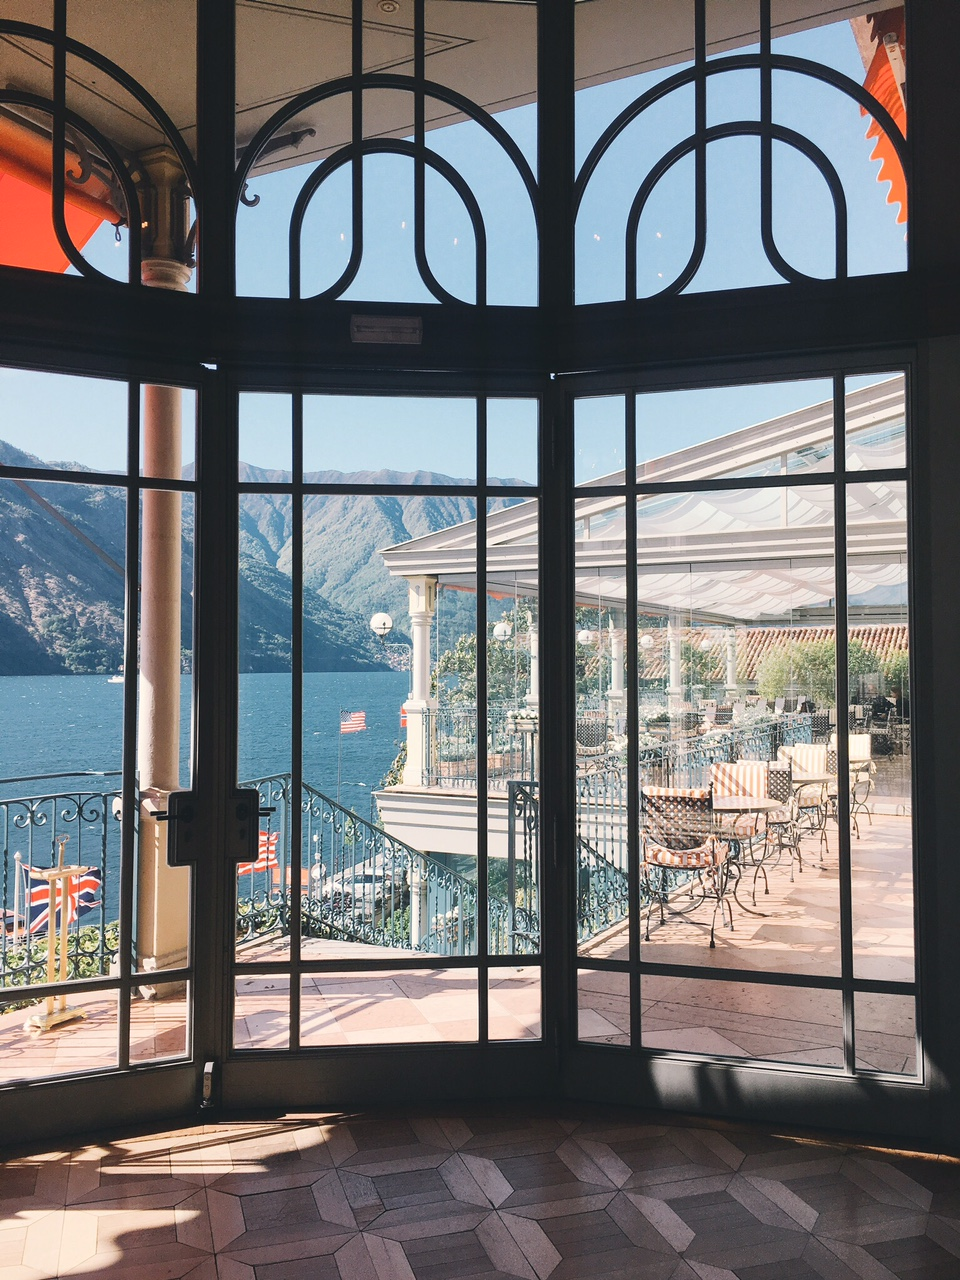 Views of Lake Como and T Bar Restaurant from lobby of Grand Hotel Tremezzo